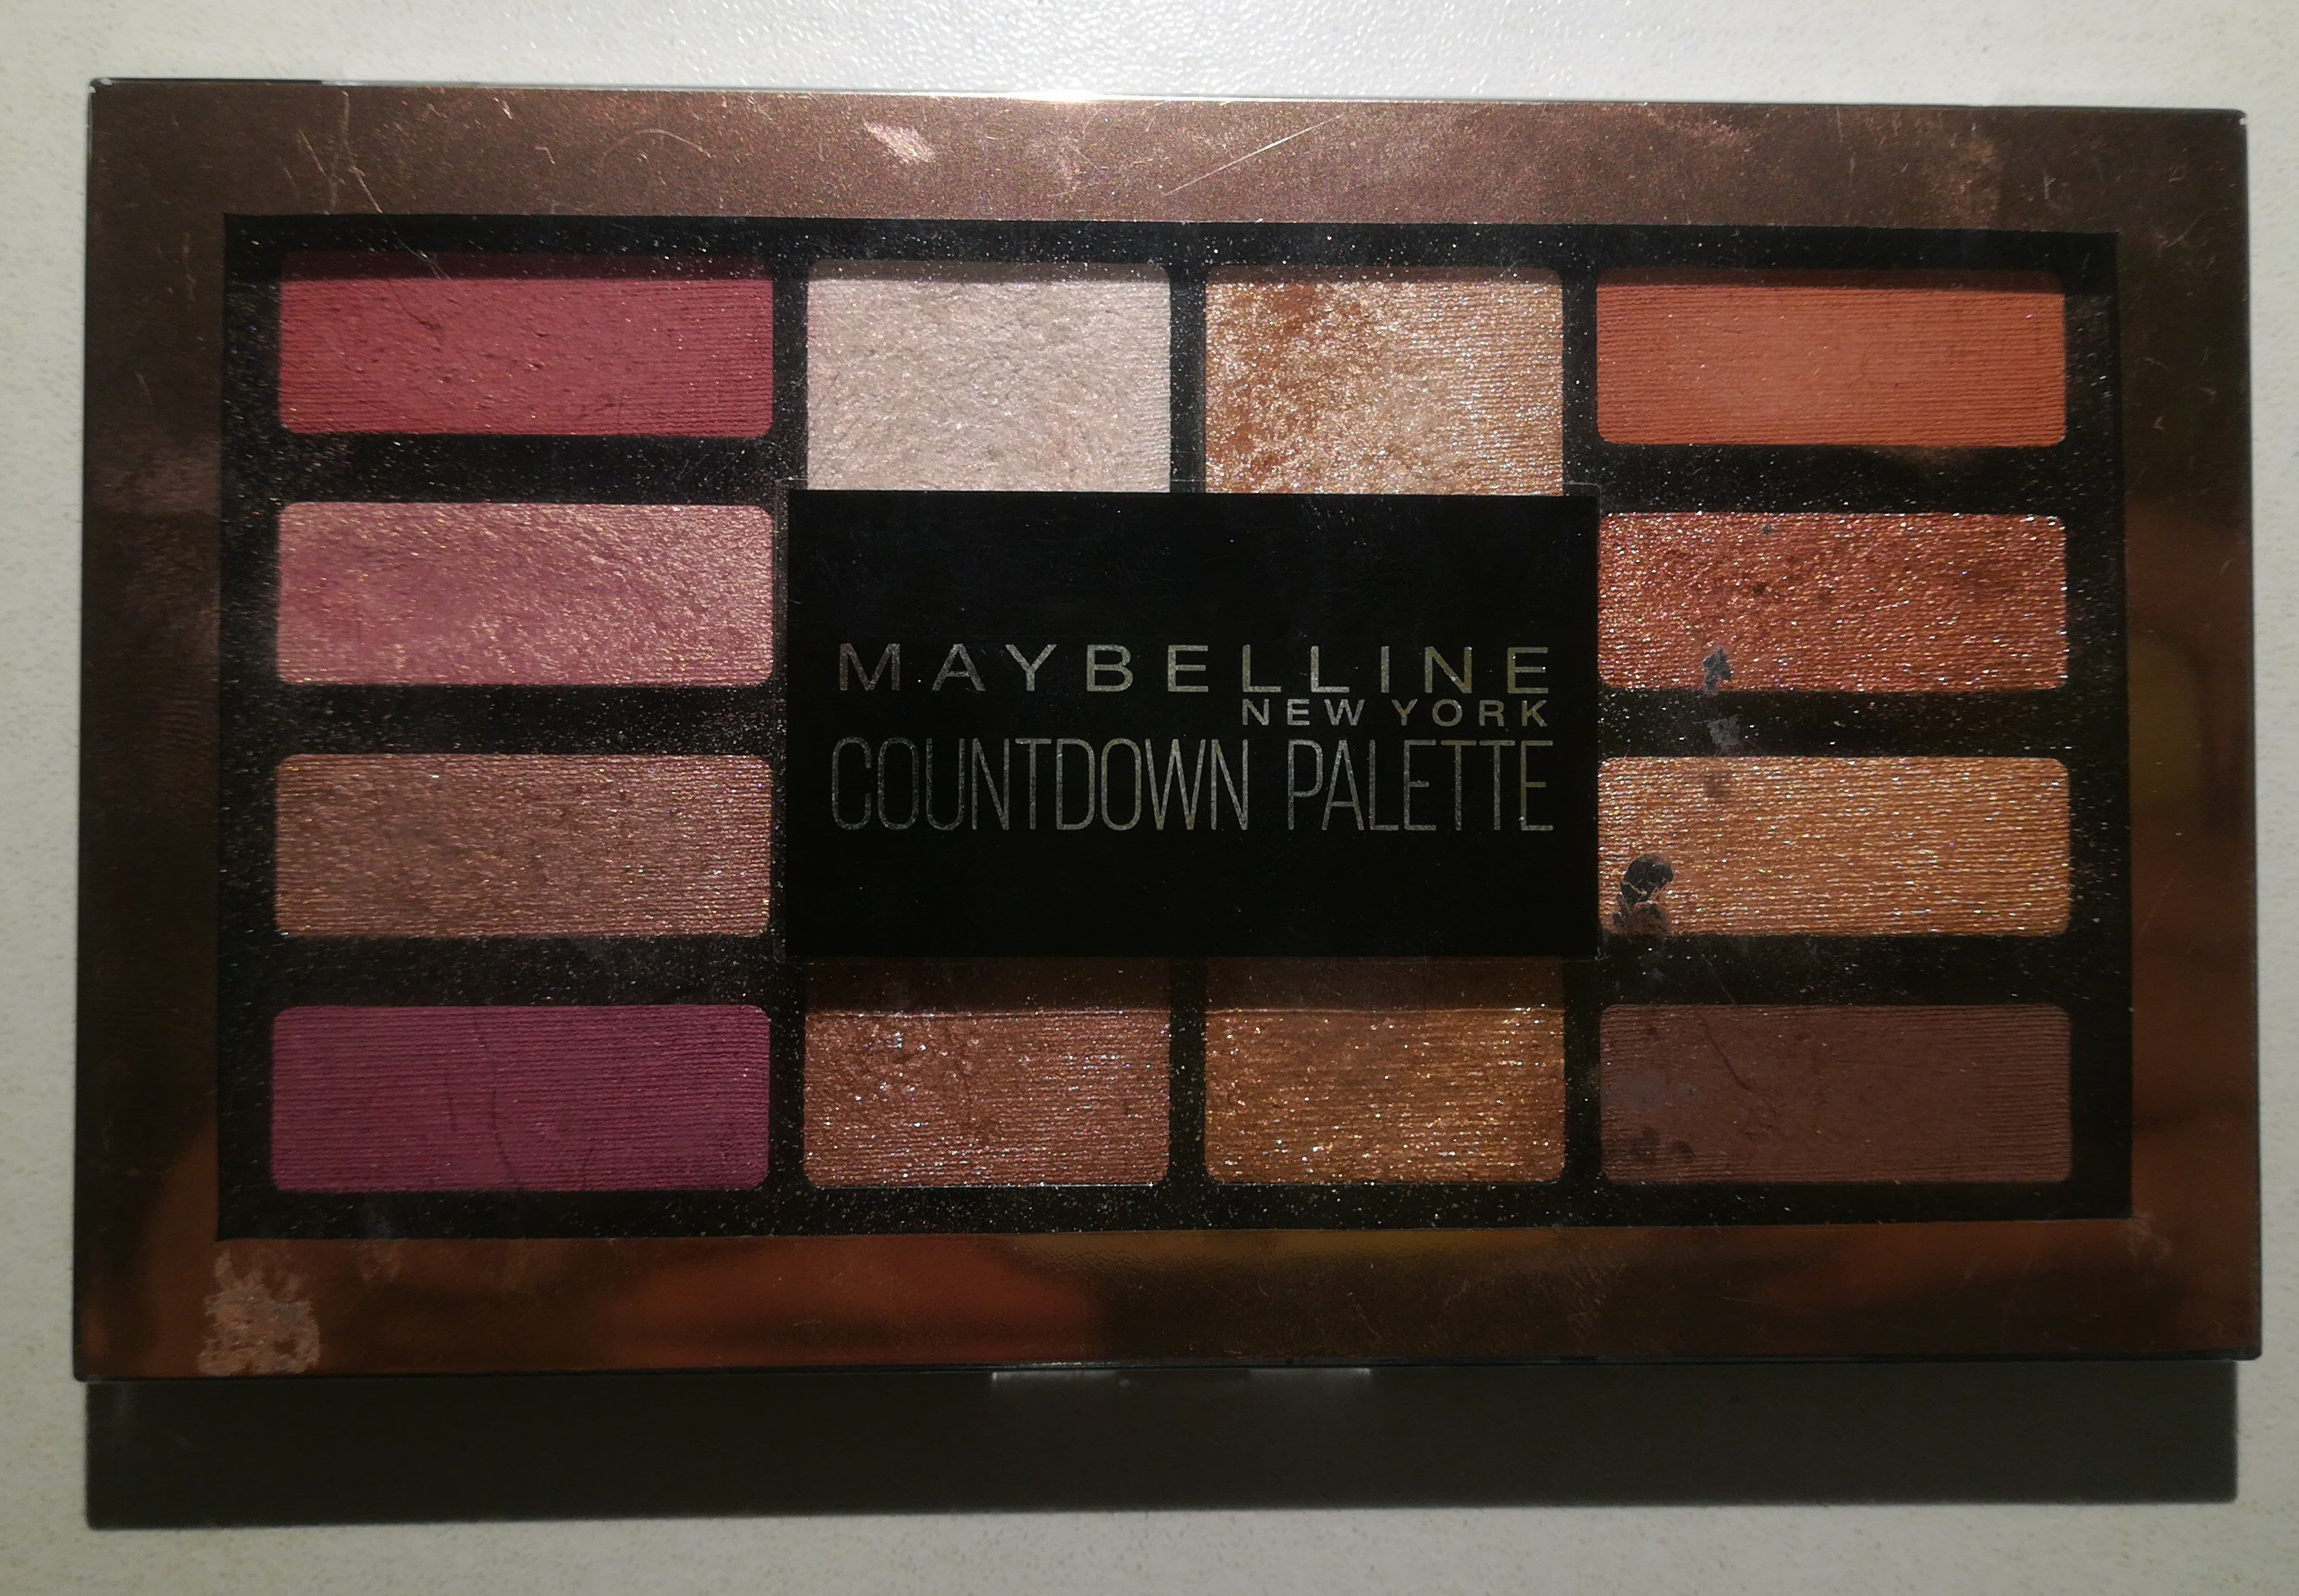 Countdown eyeshadow palette - Product